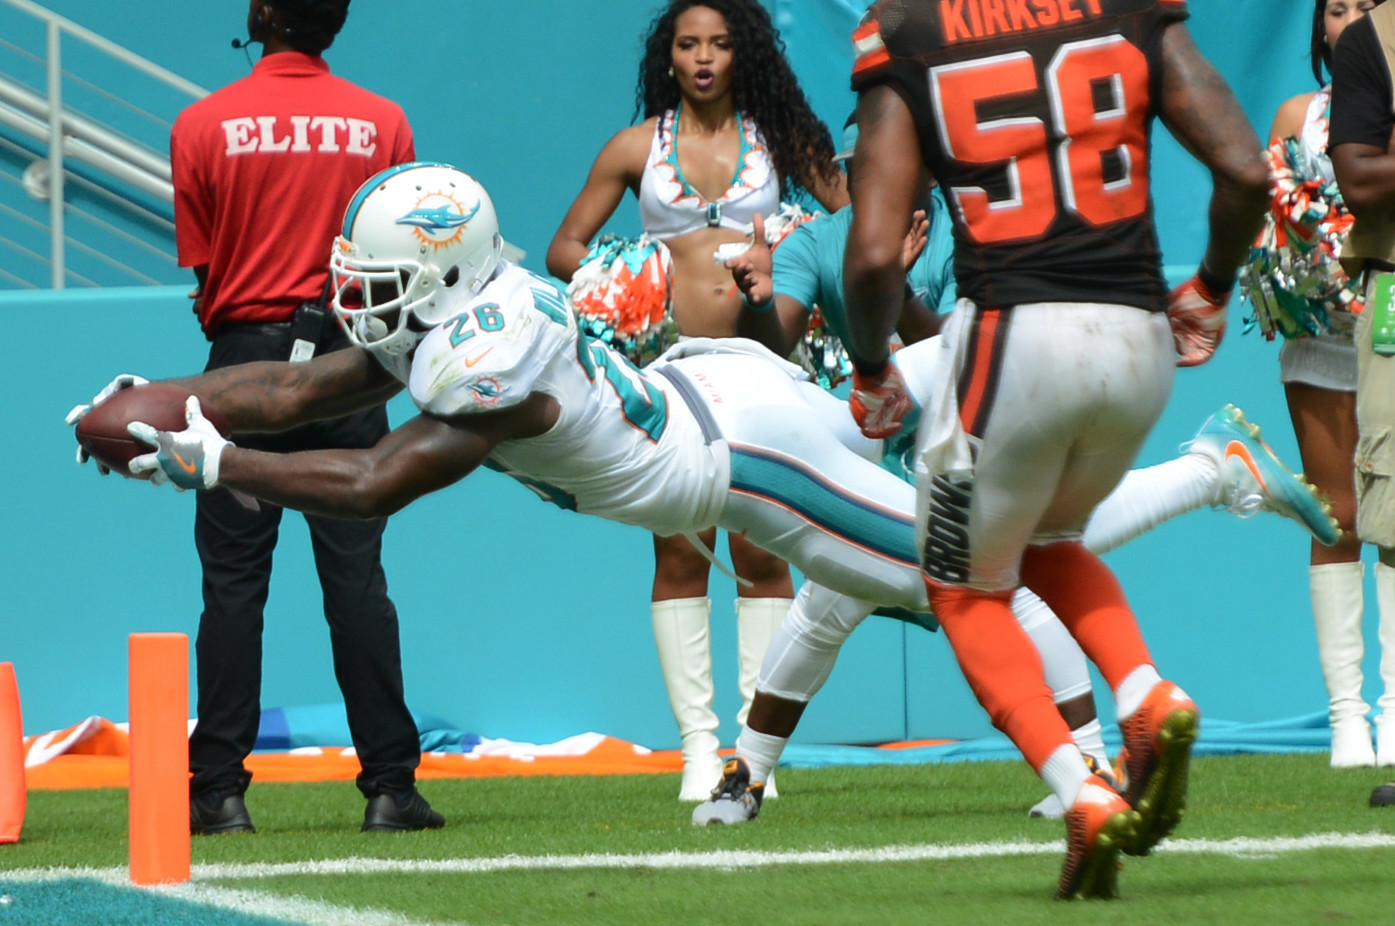 Sfl-poll-what-does-the-dolphins-ot-win-over-the-browns-indicate-20160925